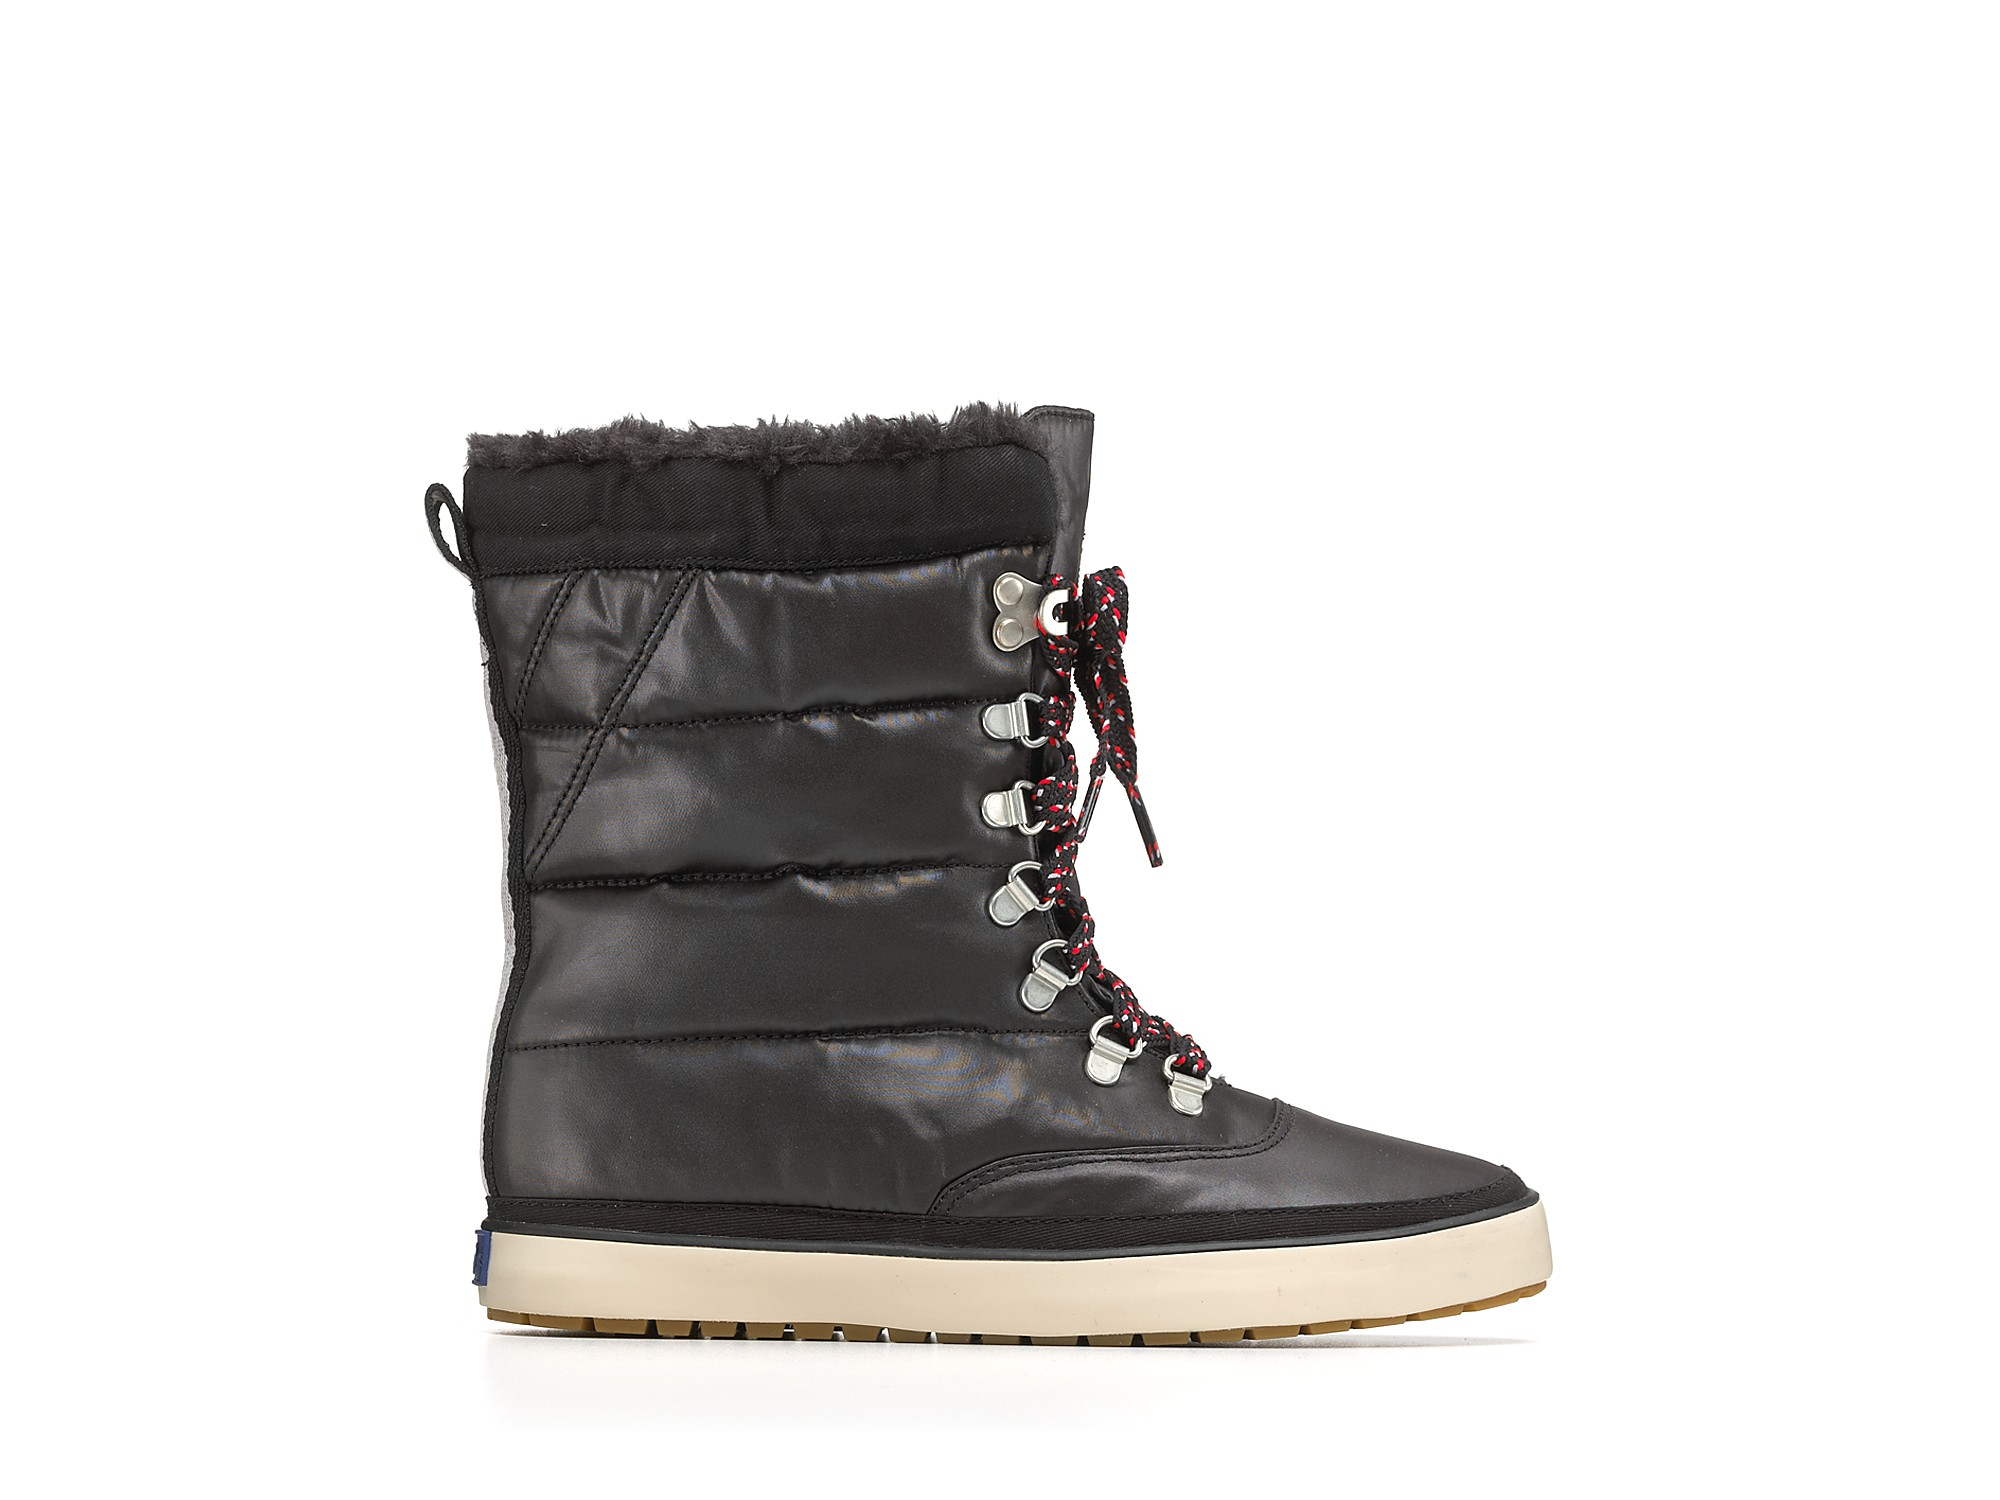 Keds Cream Puff Cold Weather Boots In Olive Black Lyst